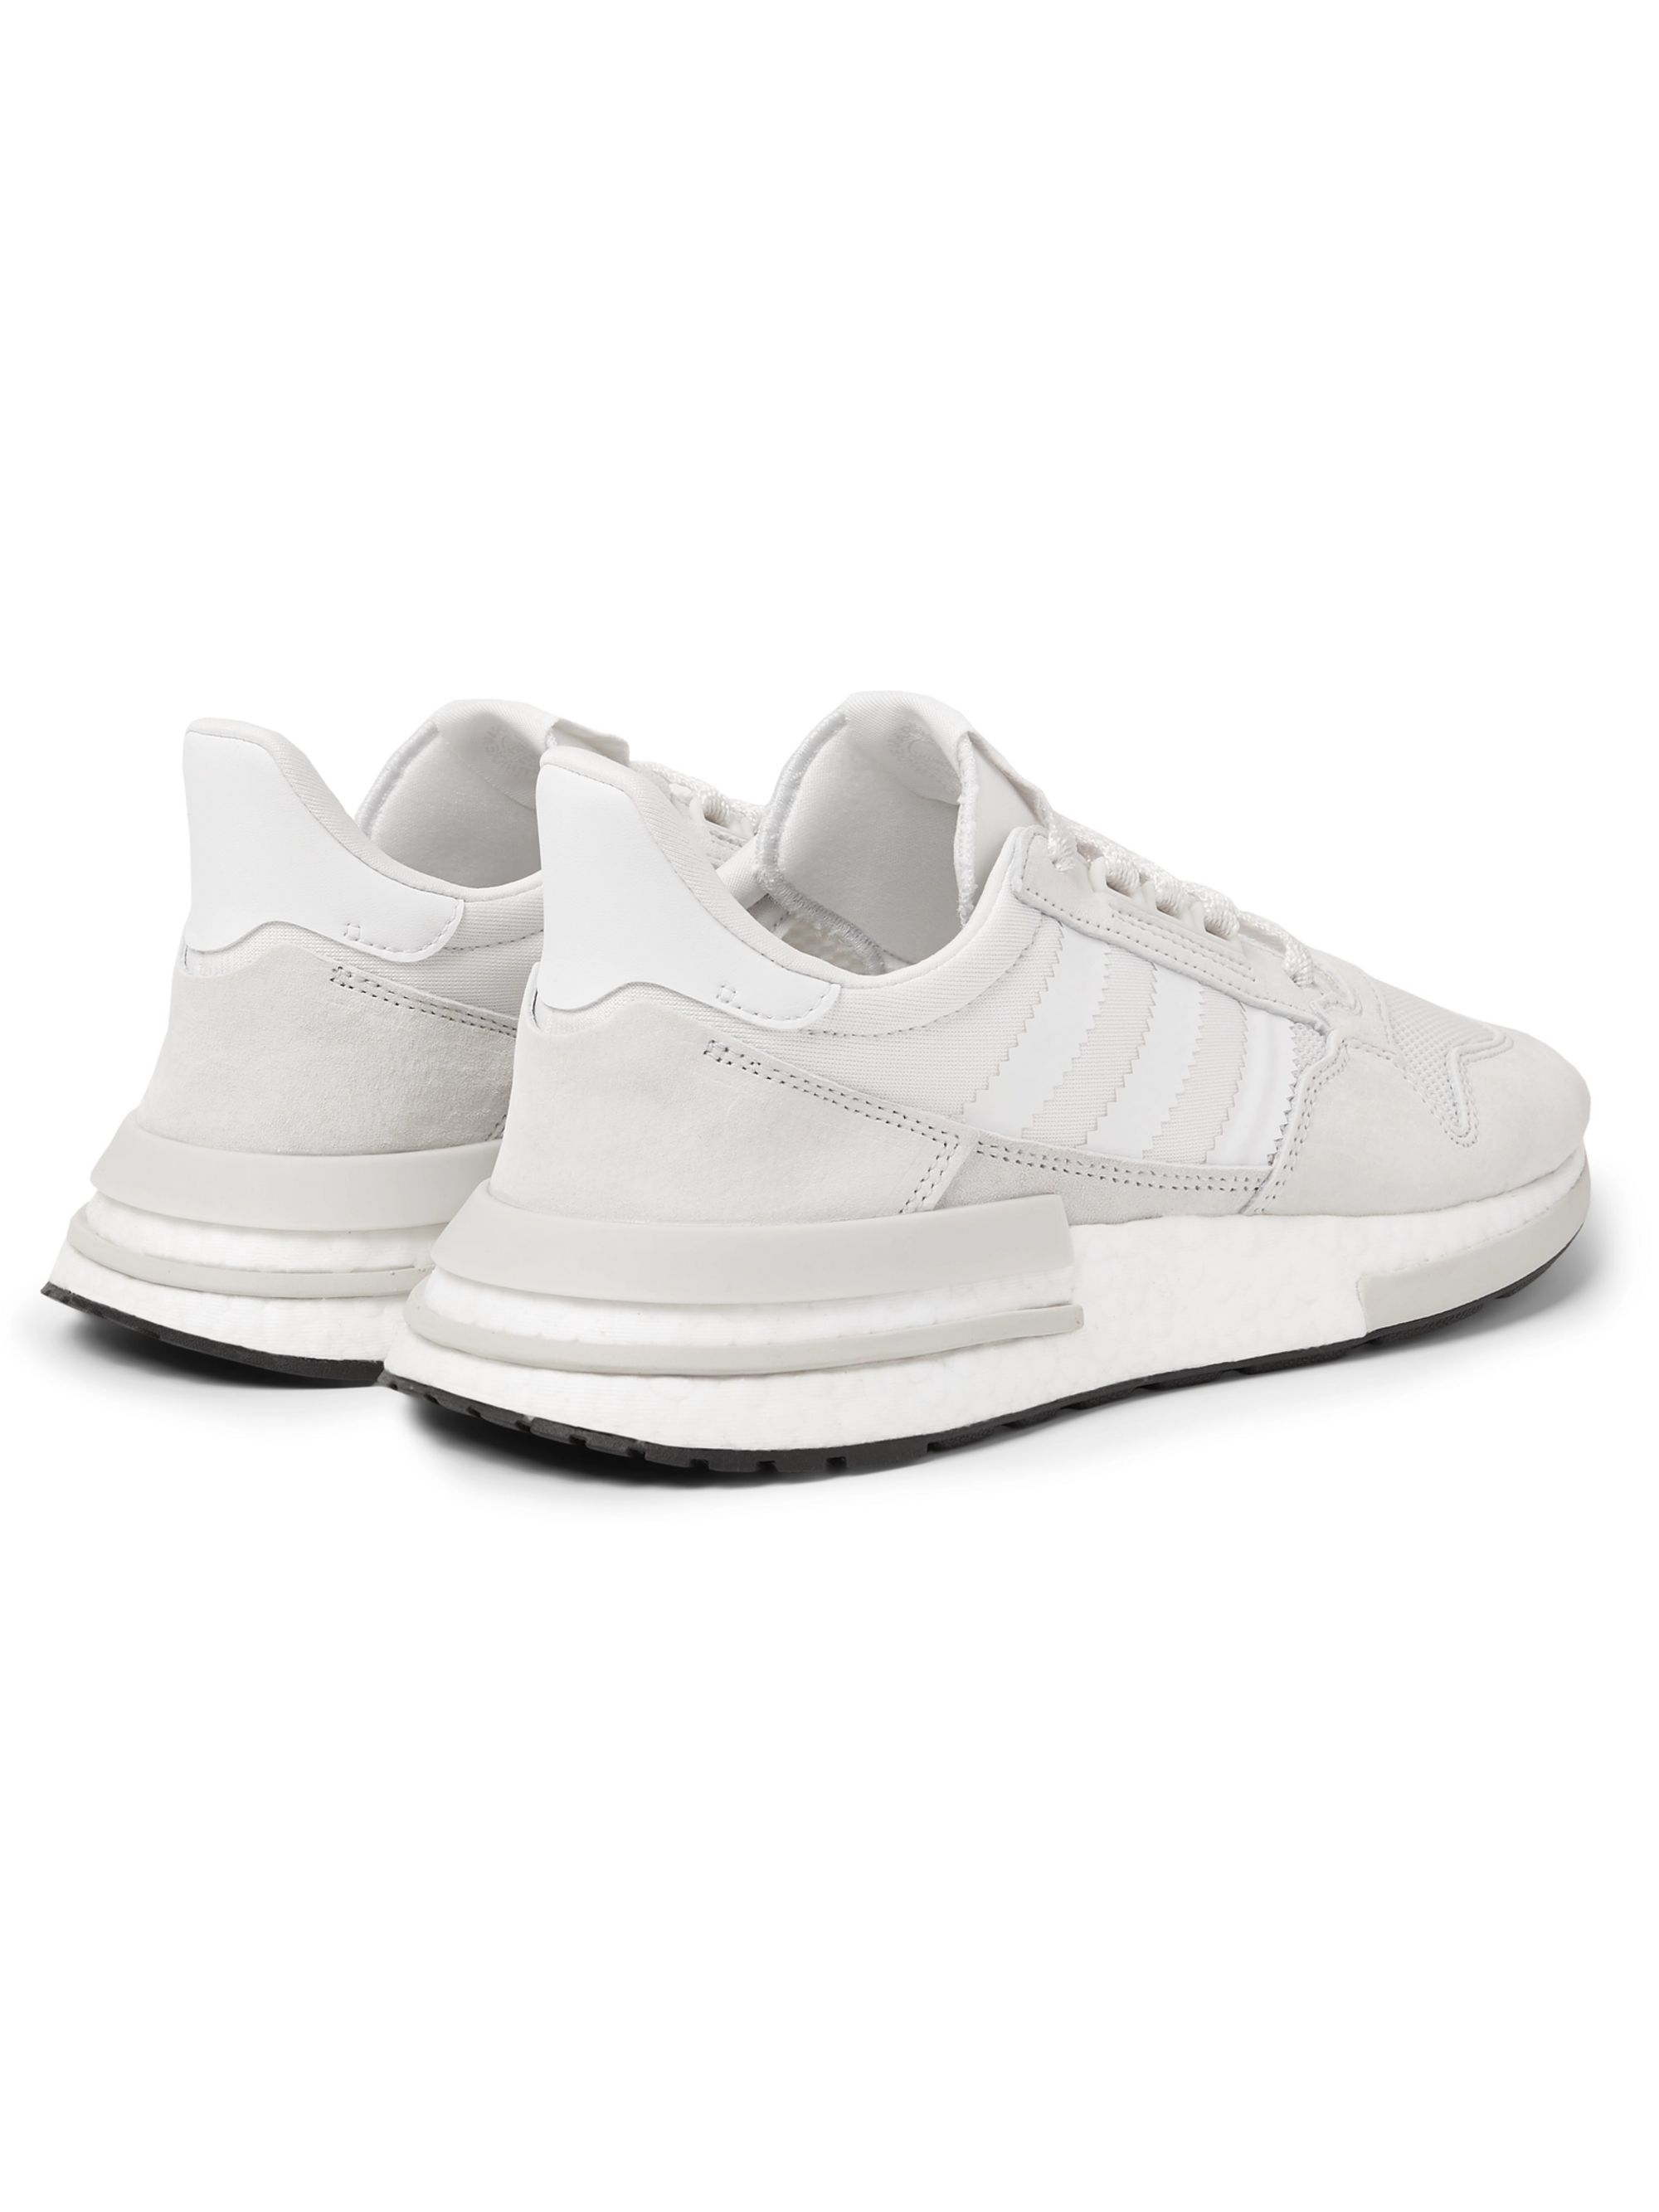 ZX 500 RM Suede, Mesh and Leather Sneakers